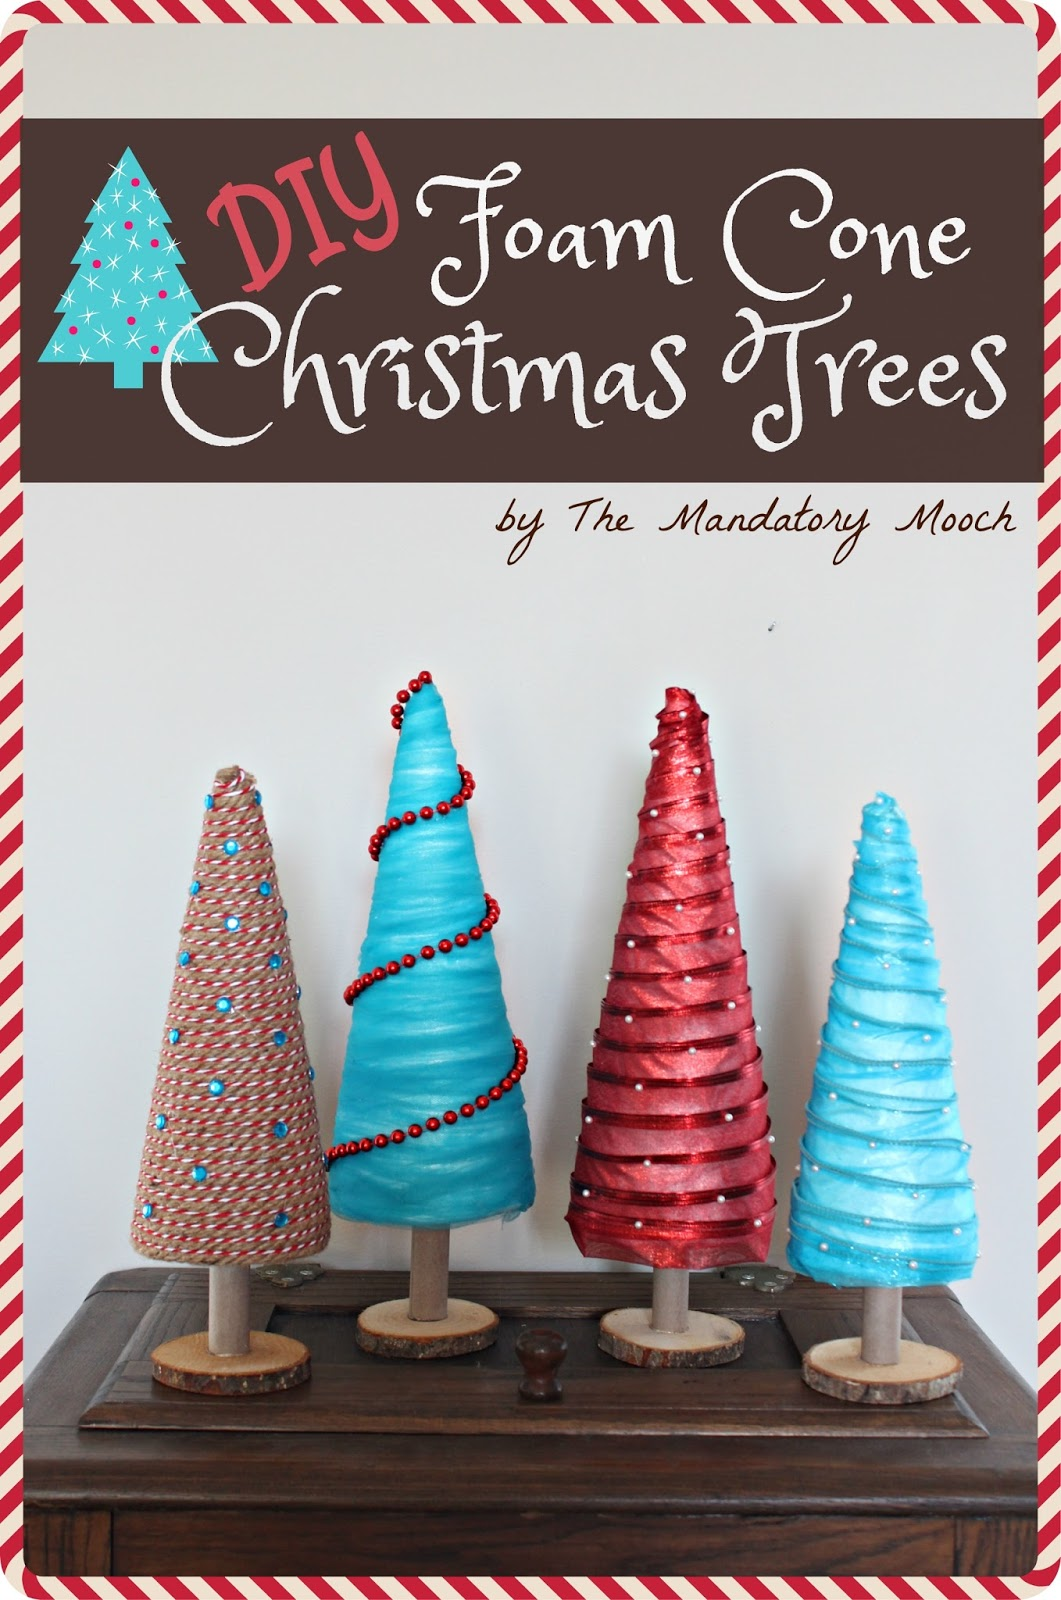 Diy Cone Christmas Trees.The Mandatory Mooch Diy Foam Cone Christmas Trees